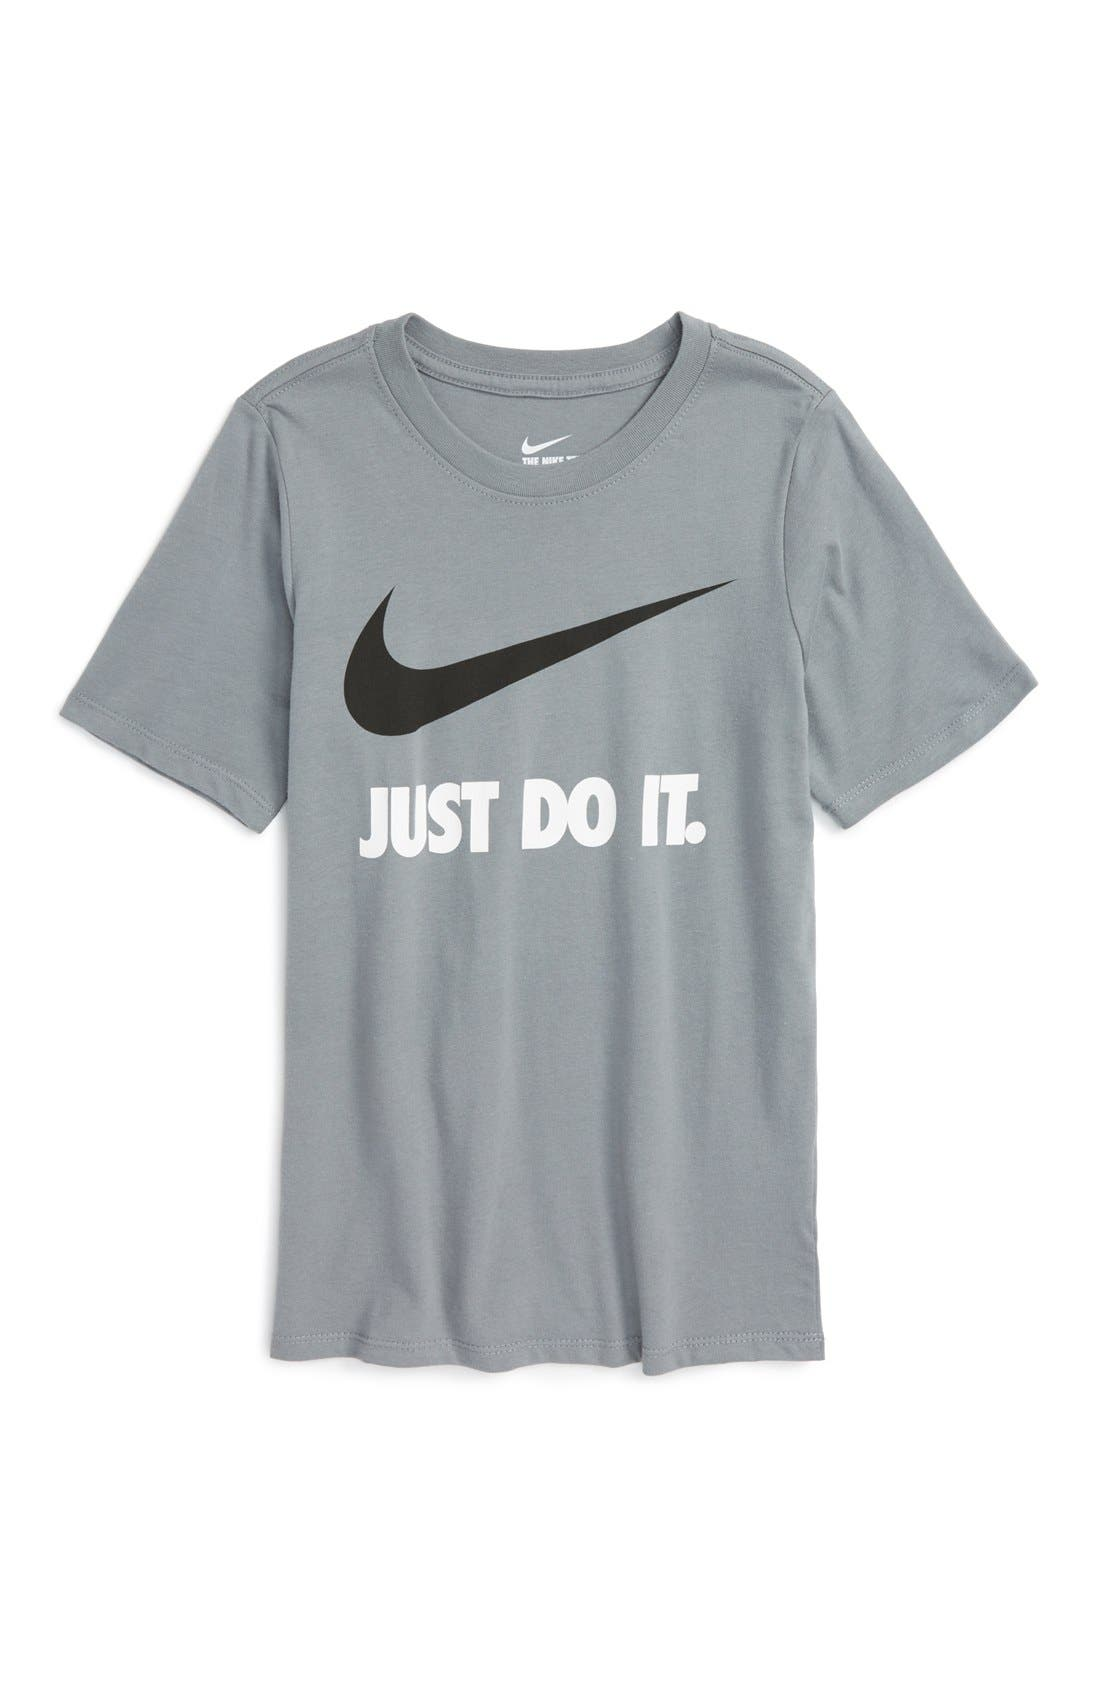 Alternate Image 1 Selected - Nike Just Do It Cotton T-Shirt (Little Boys & Big Boys)